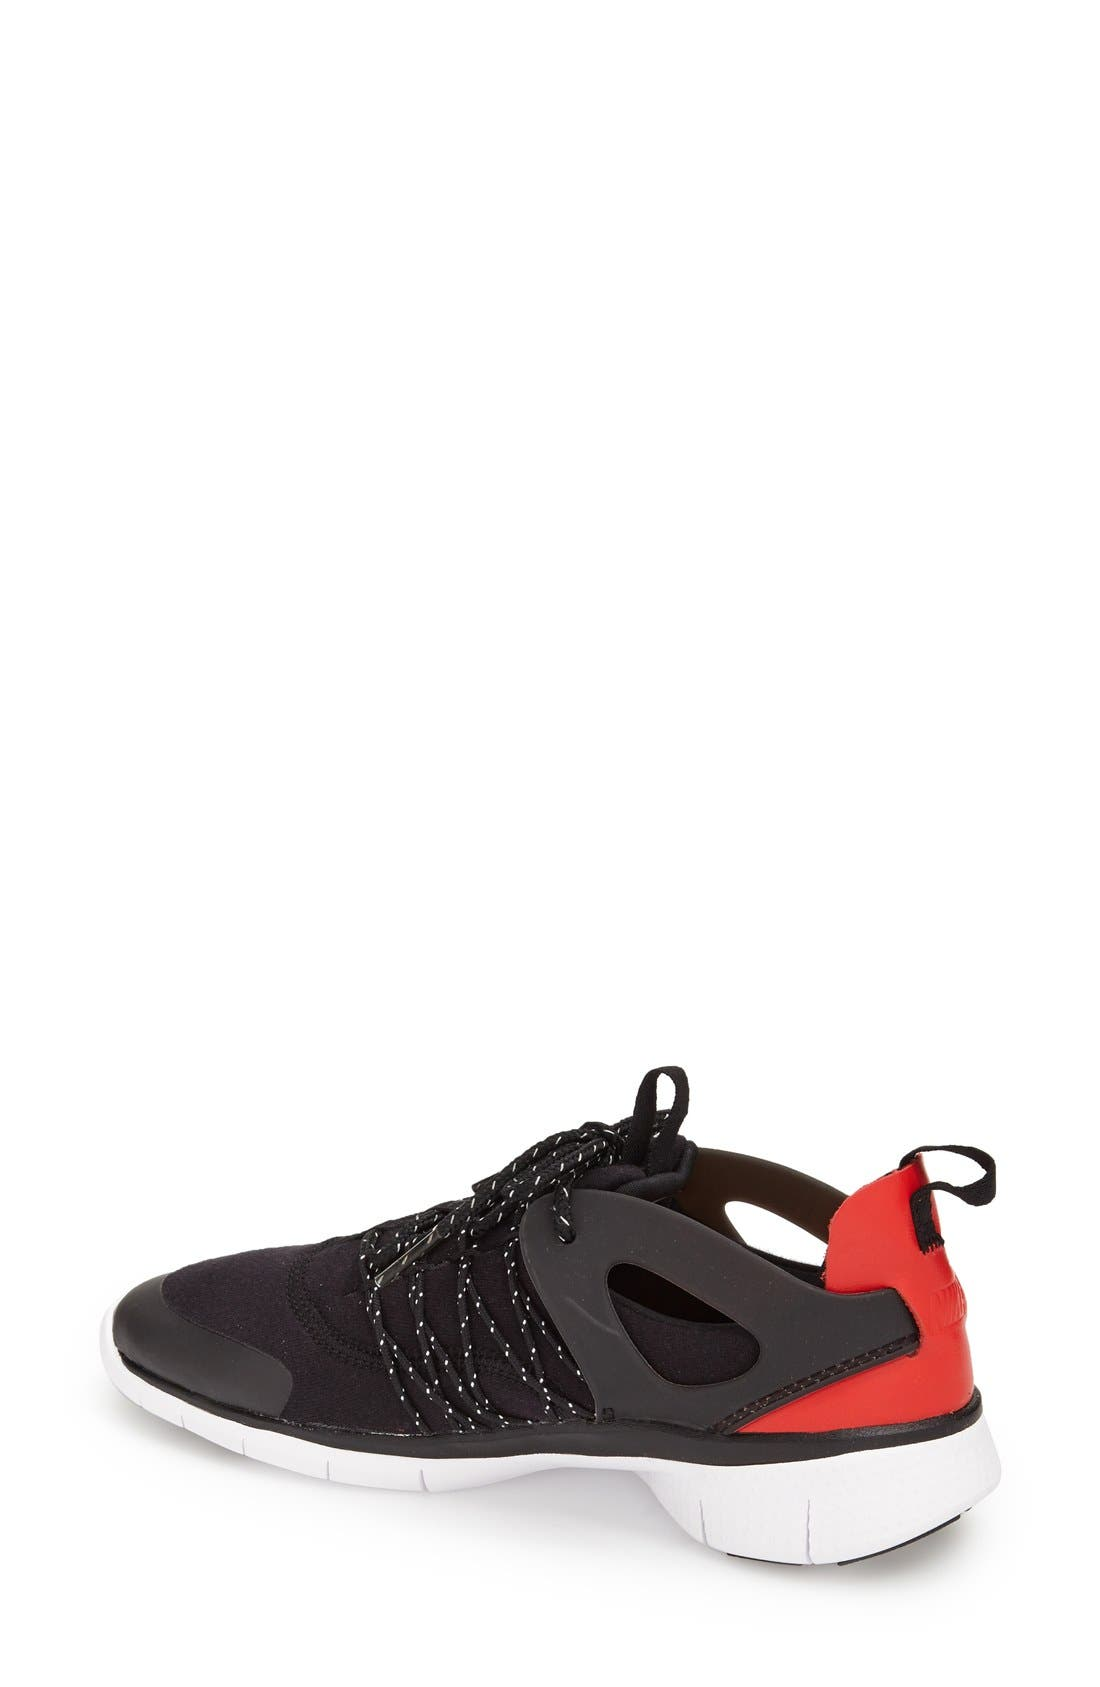 'Free Viritous' Training Shoe,                             Alternate thumbnail 3, color,                             002